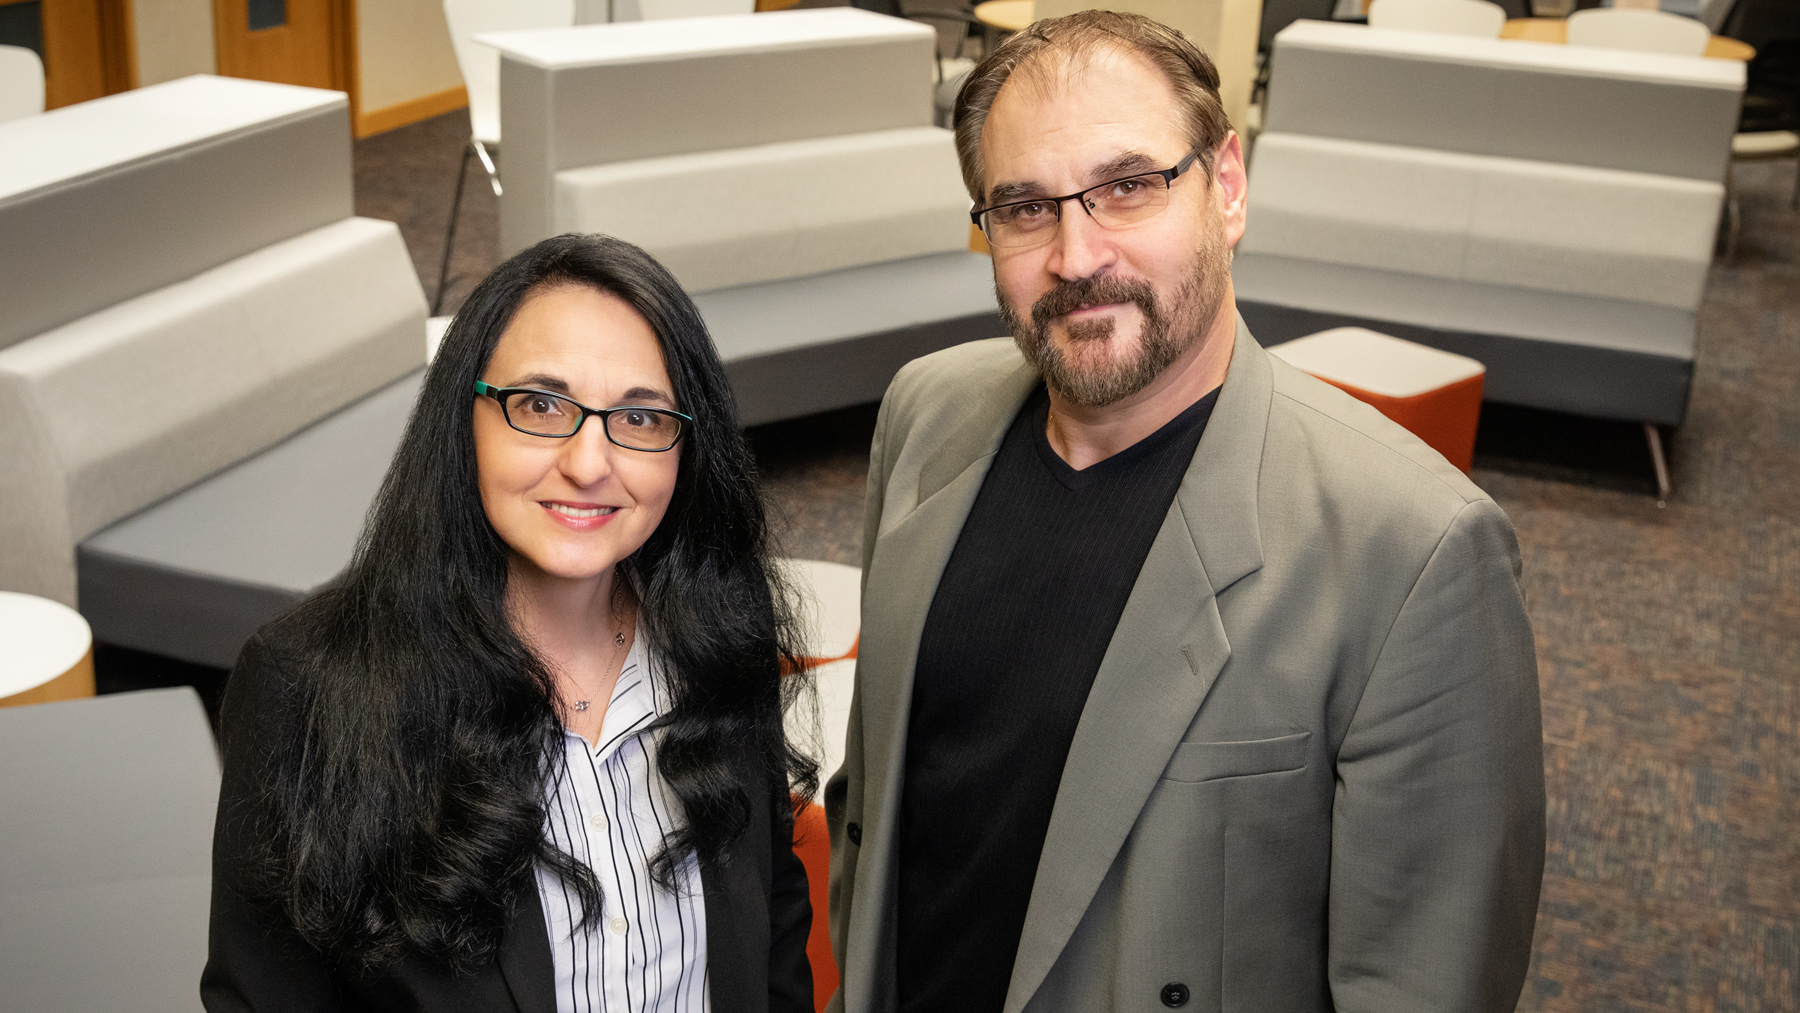 Psychology professors Sanda Dolcos, left, and Florin Dolcos led a study of religiosity and emotion-regulation strategies among healthy adults.  Photo by L. Brian Stauffer